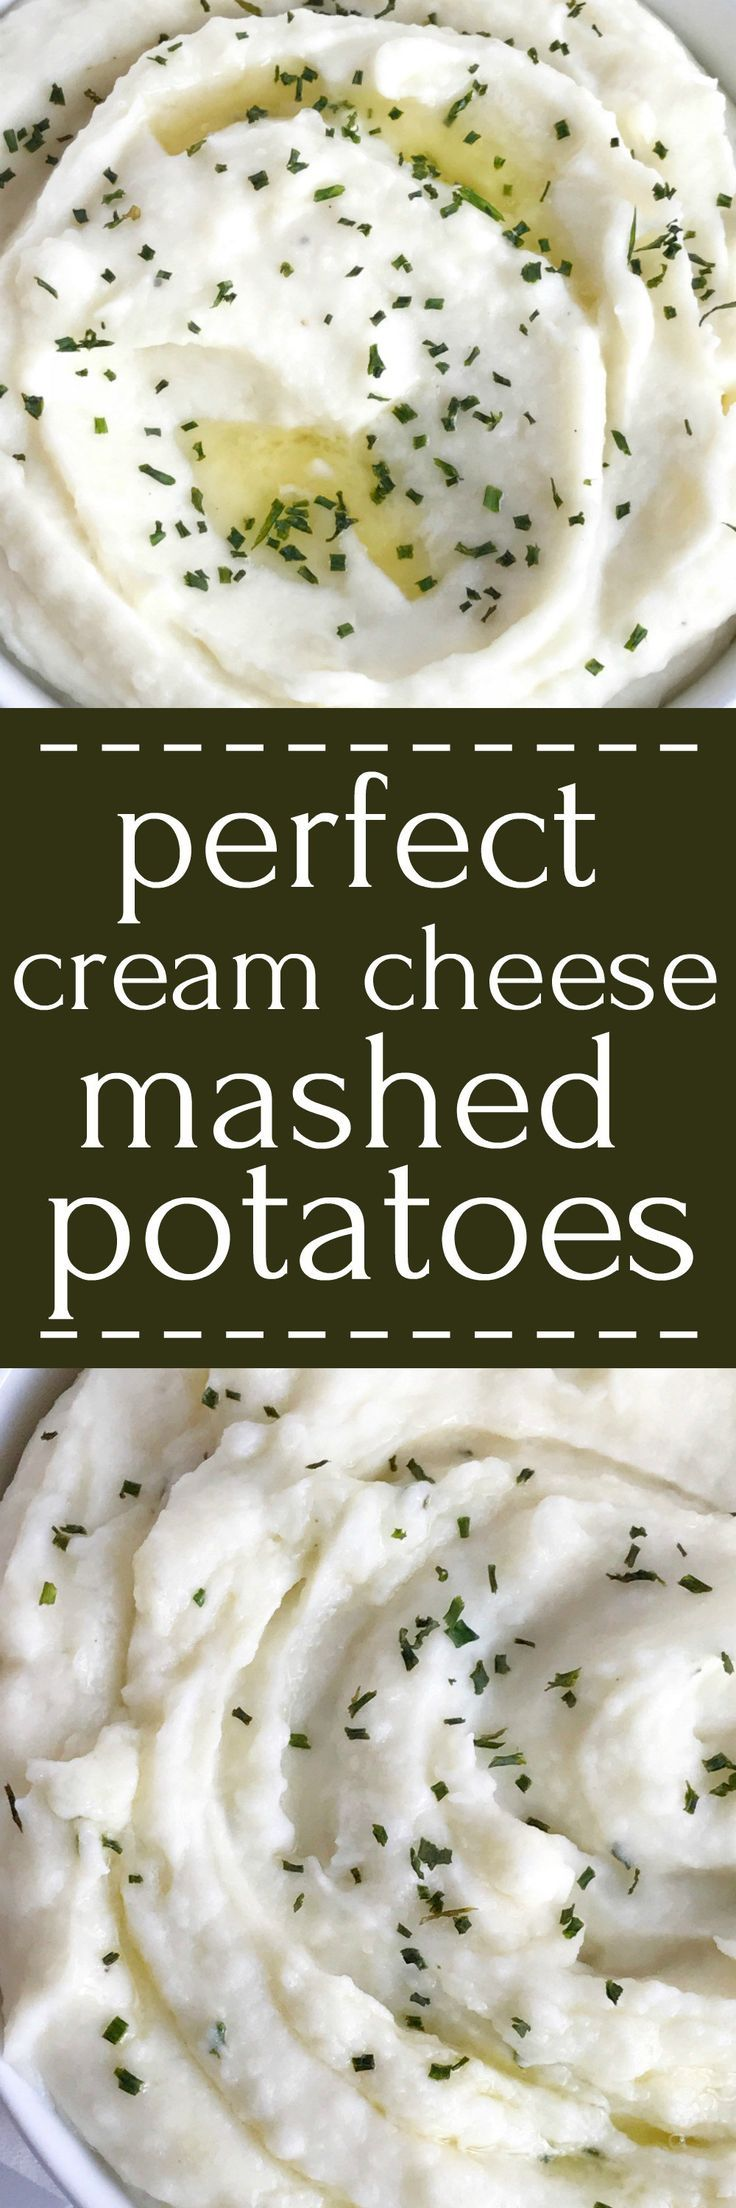 These are perfect cream cheese mashed potatoes. Only a few simple ingredients for creamy, smooth, and mashed potatoes that are full of flavor. A great side dish for Thanksgiving, dinner, or any special Holiday dinner | togetherasfamily.com #thanksgiving #